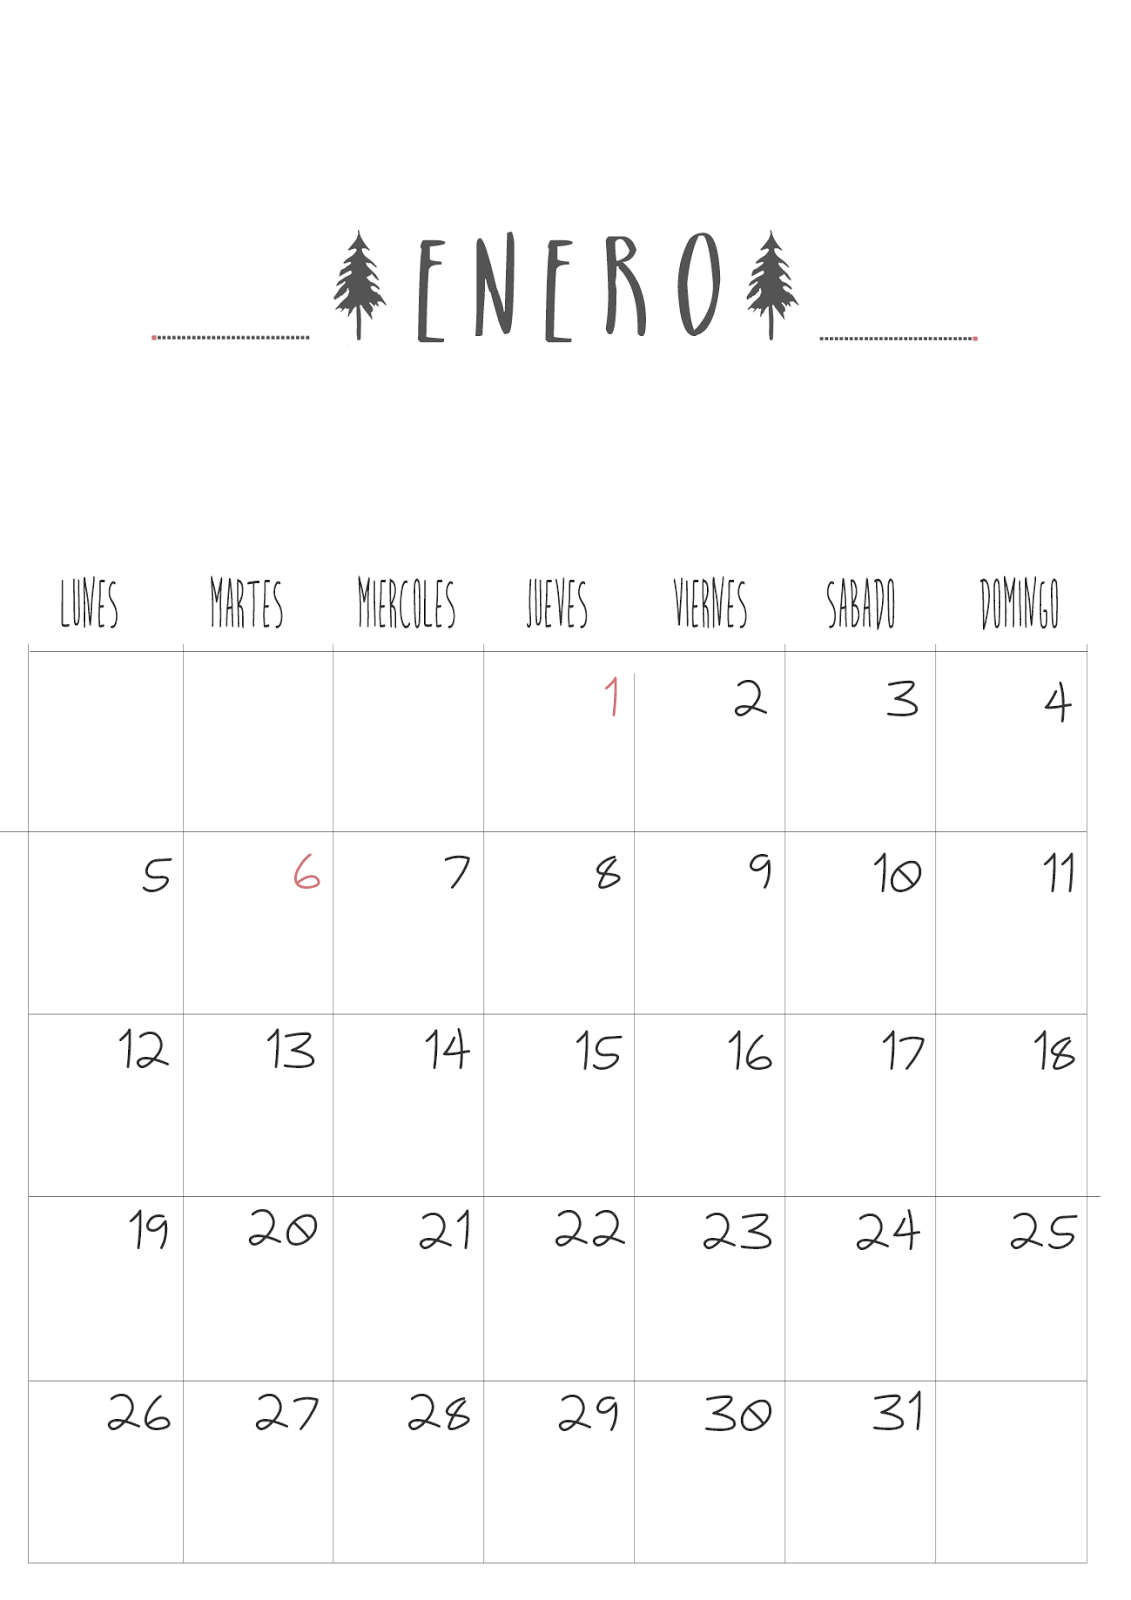 freebies-calendario-enero-molón